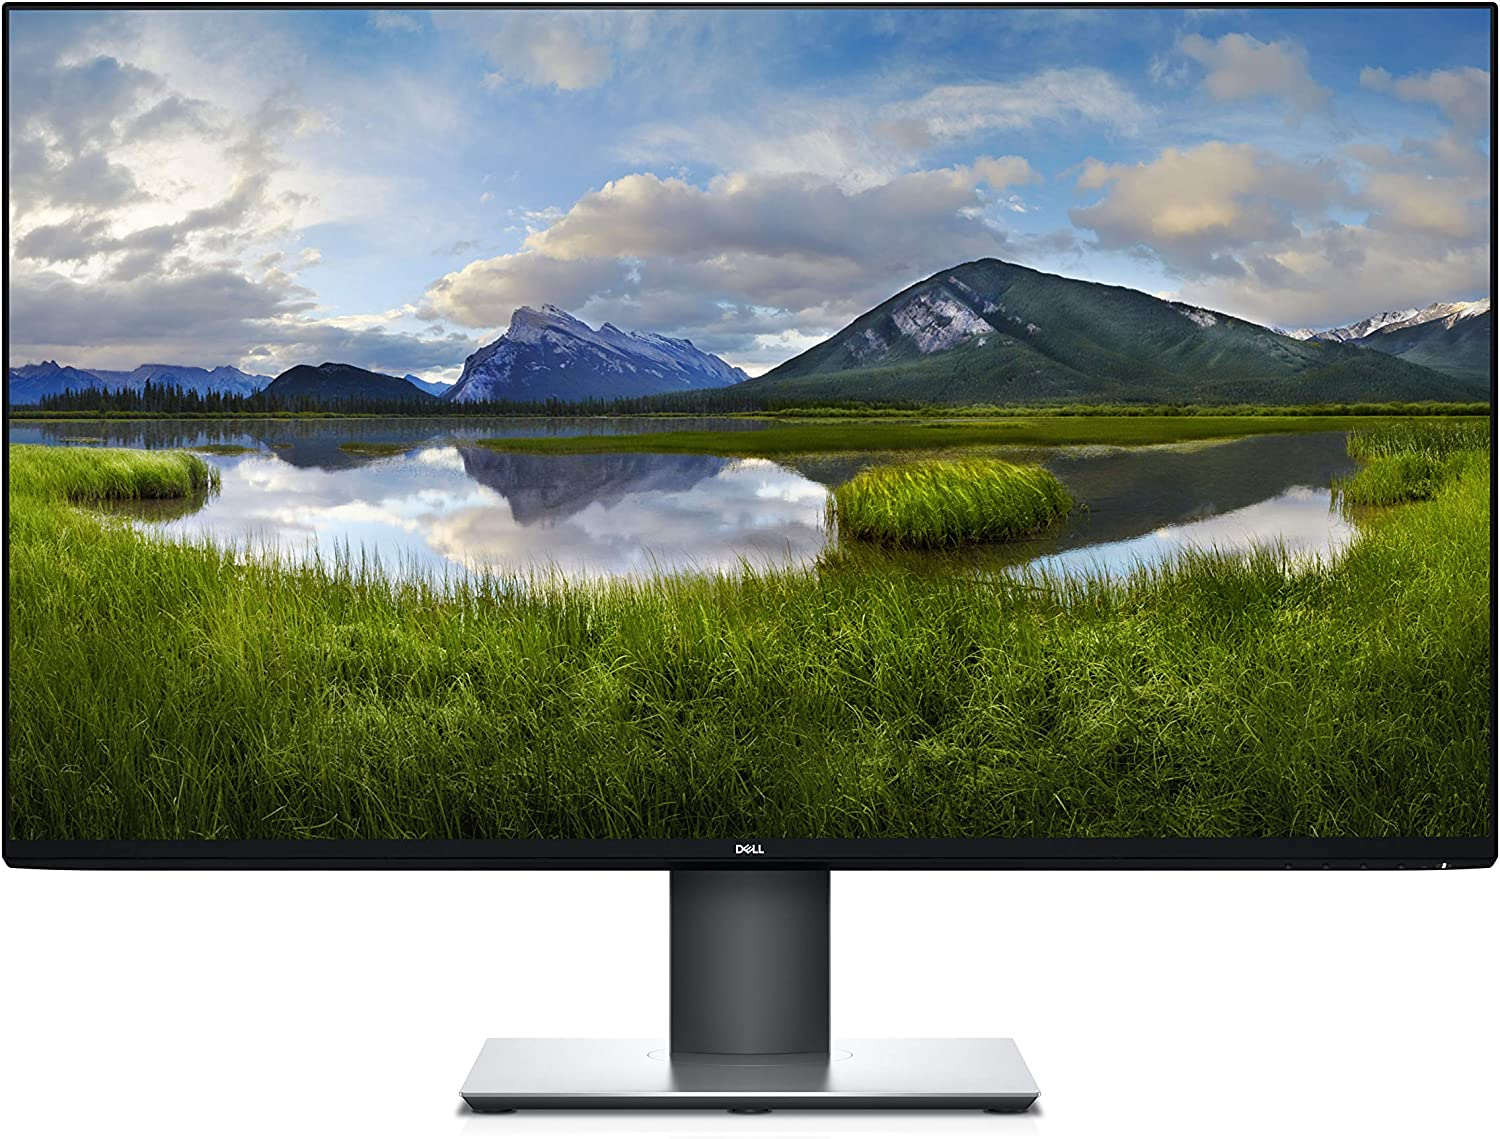 DELL U9Q 9 cm (9 inch) monitor (HDMI, USB, DisplayPort, 9ms Response  Time), black